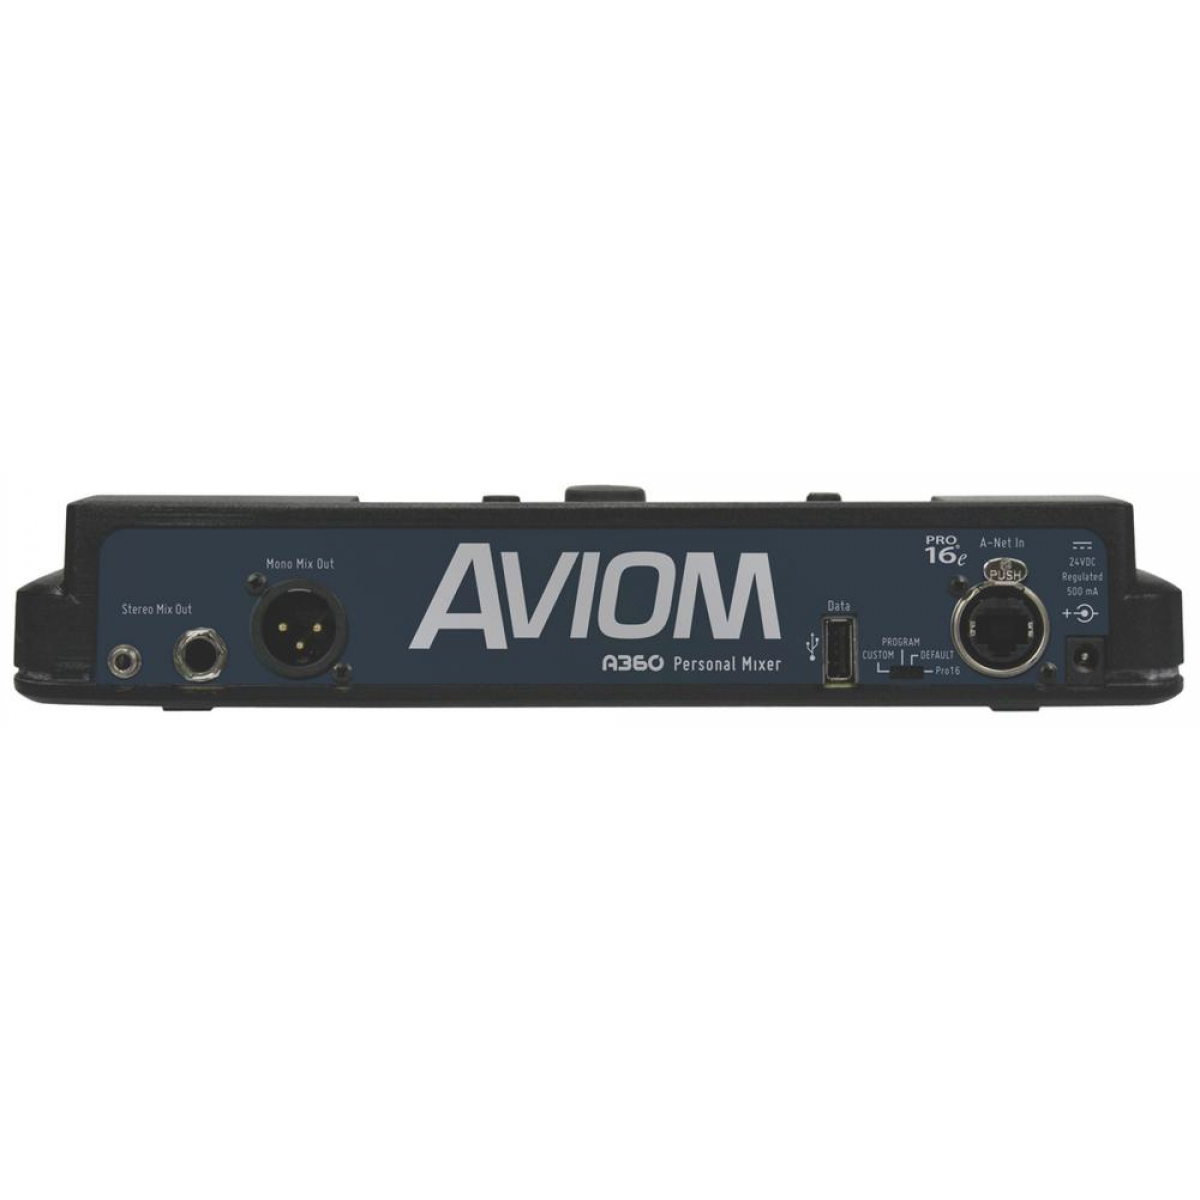 Product Image: 146541_A360_AVIOM_rear.jpg